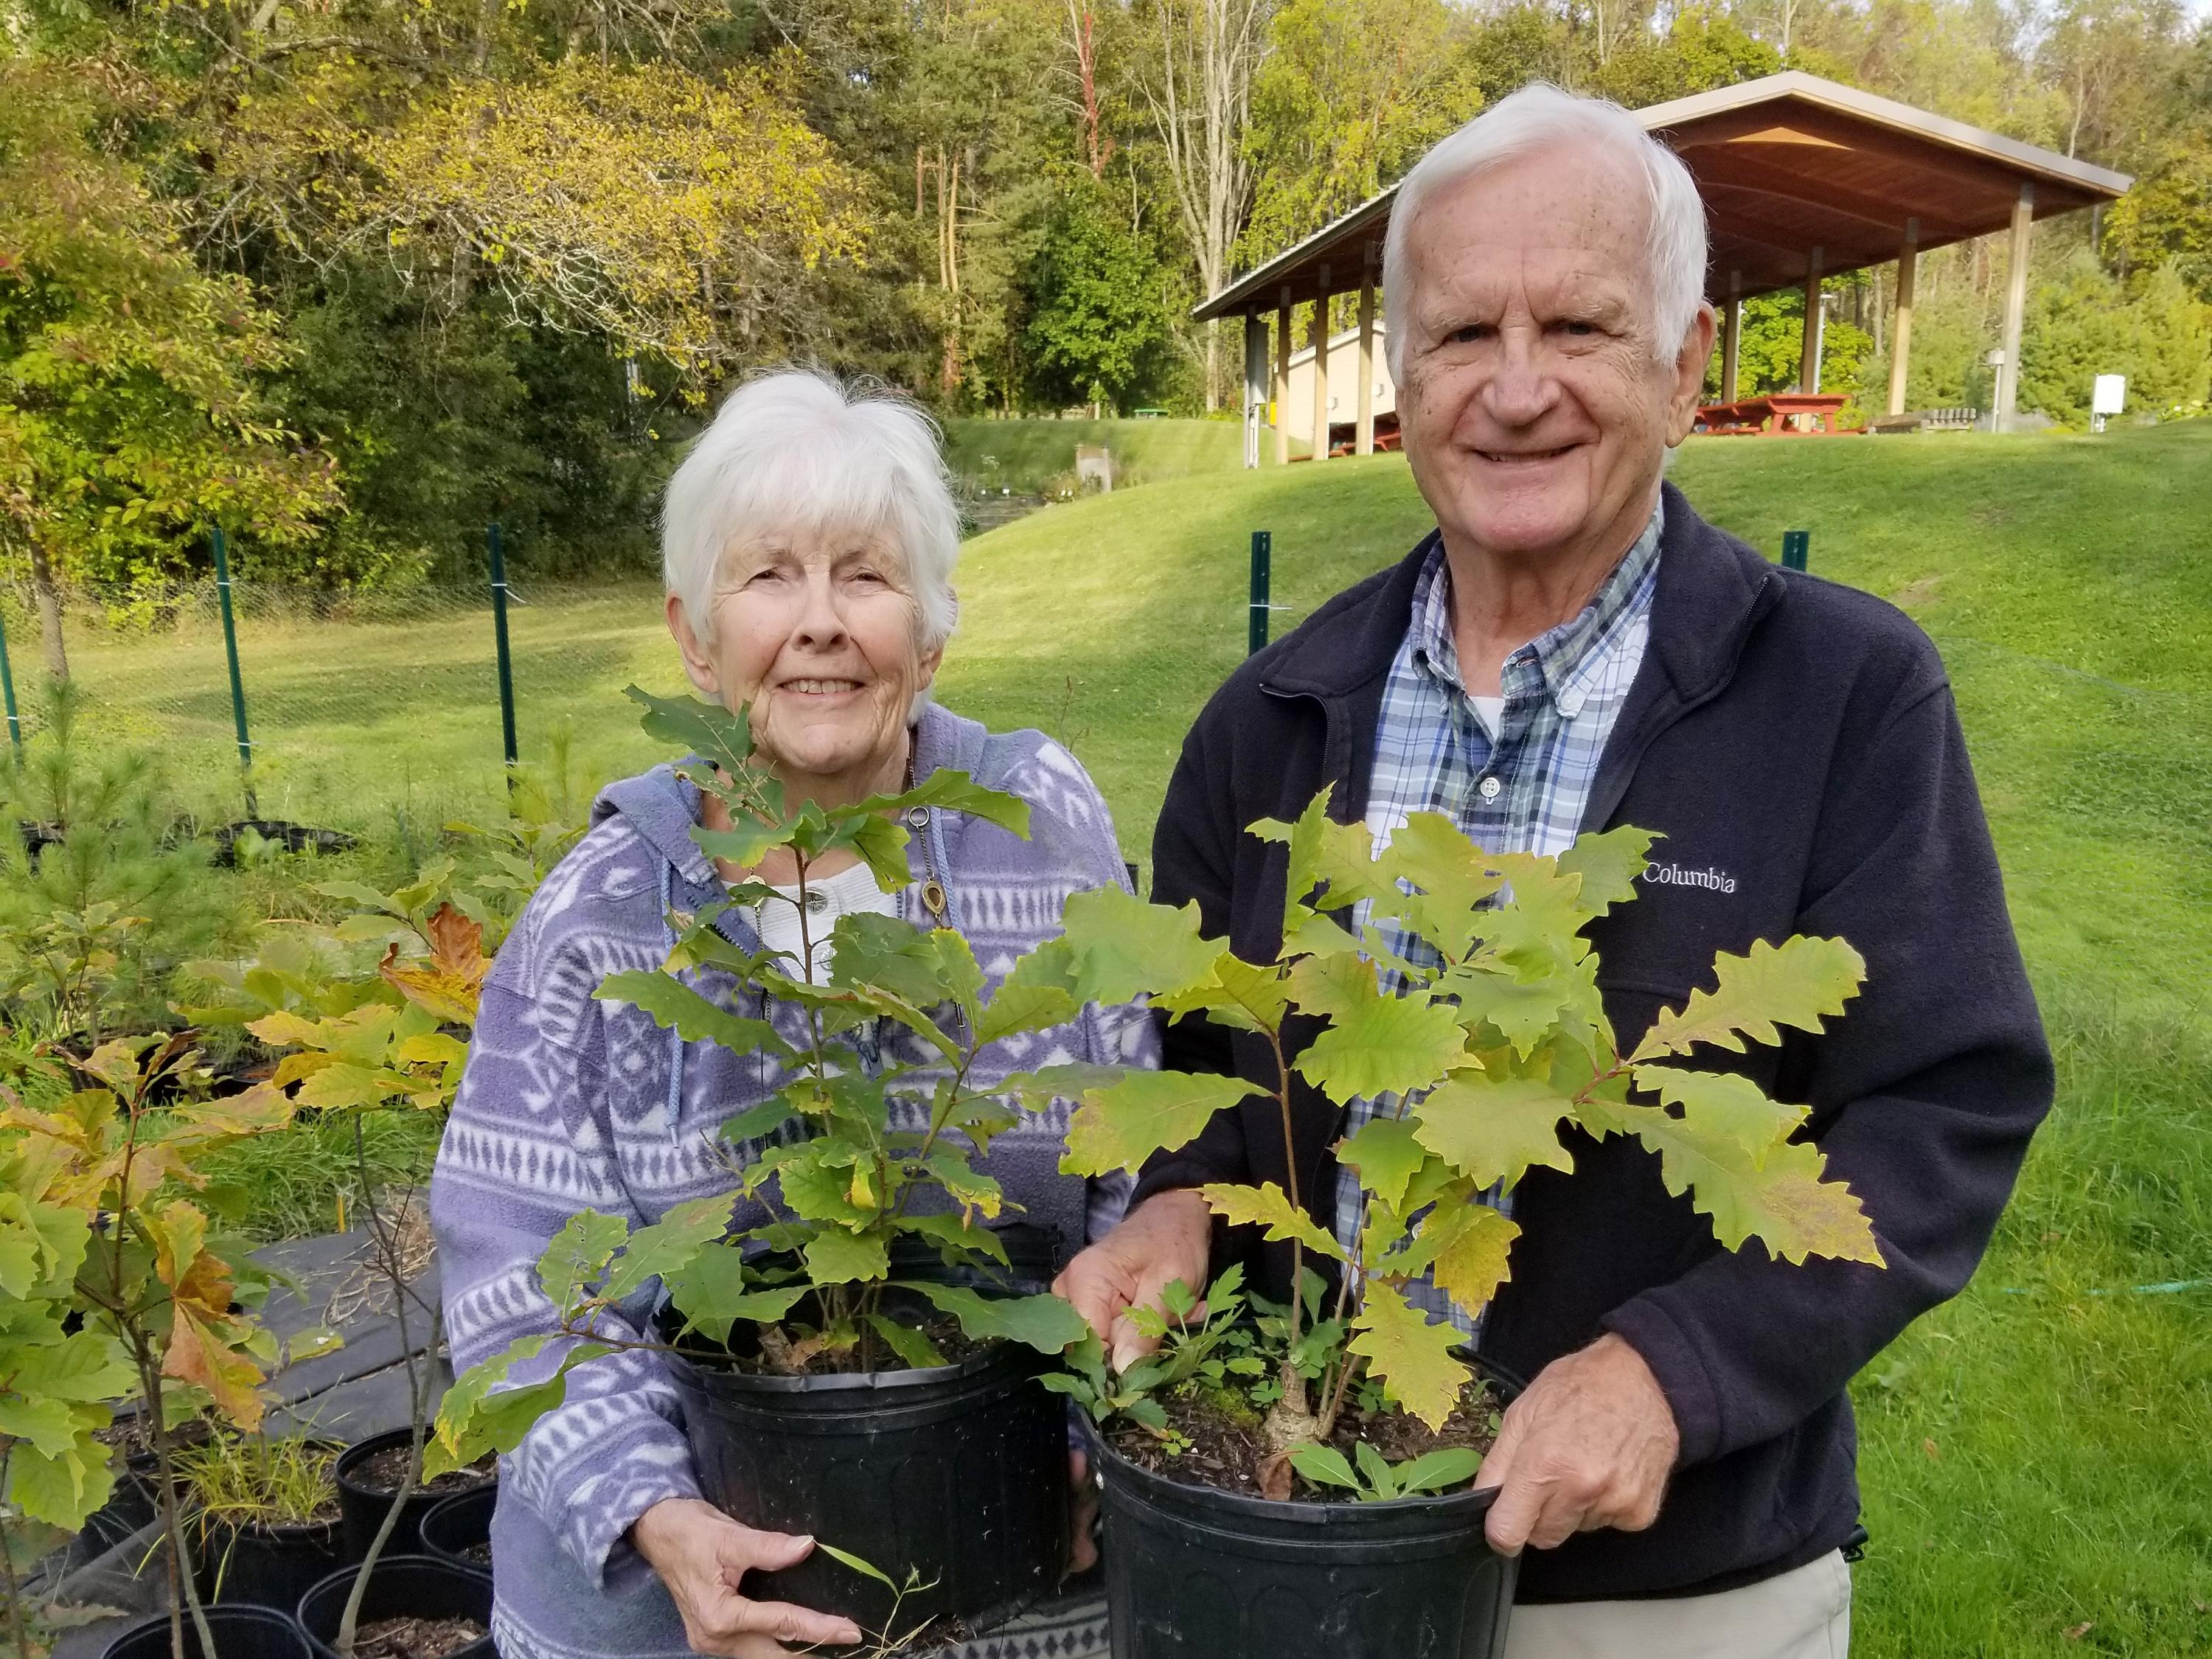 -- Jane and George Pauk recently pledged $5,000 per year for five years ($25,000 total) to the Canal Forest Restoration Project at SUNY Oswego's Rice Creek Field Station